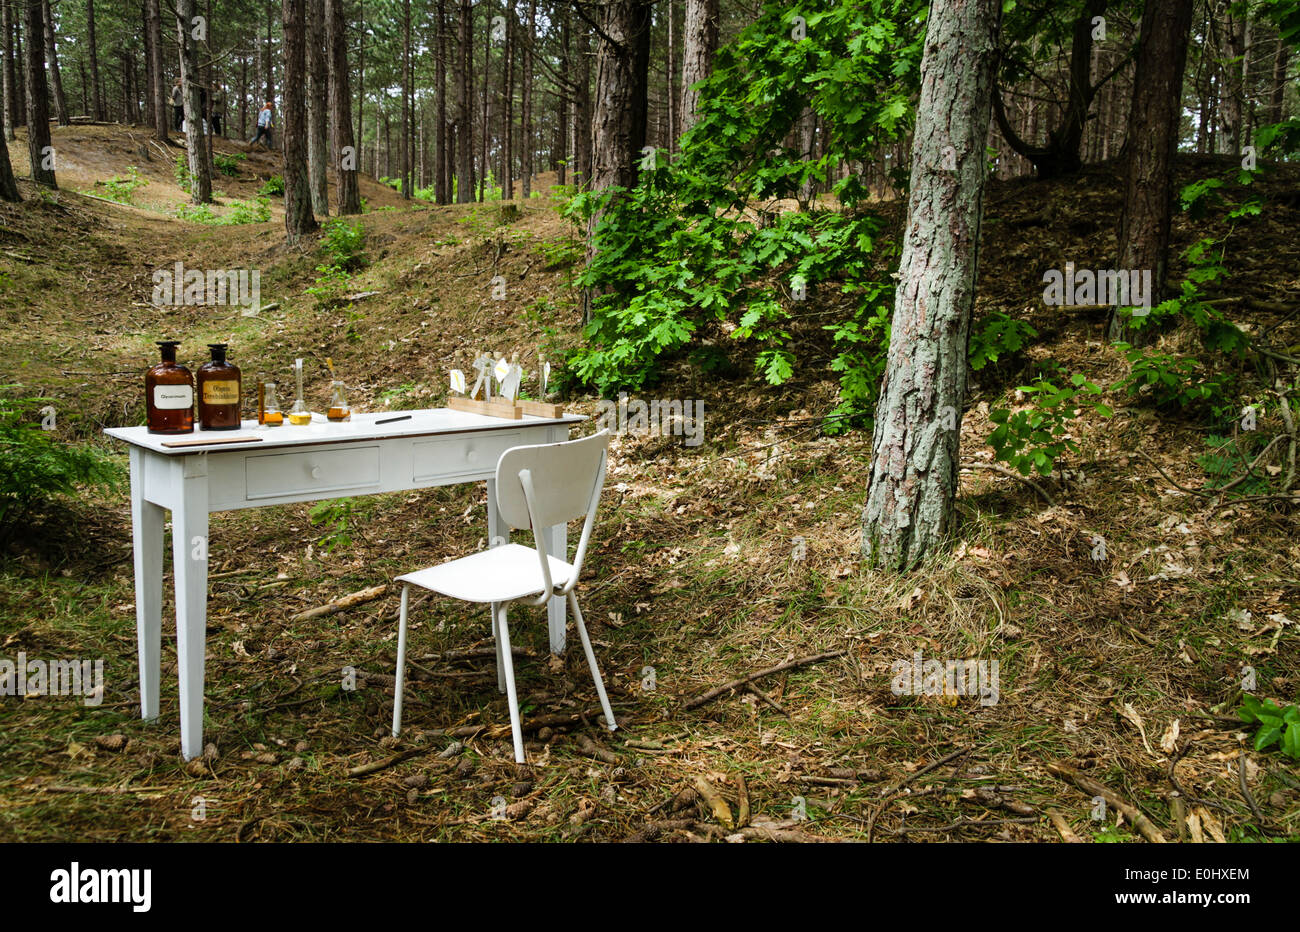 Natural Sciences experiment in a forest - Stock Image